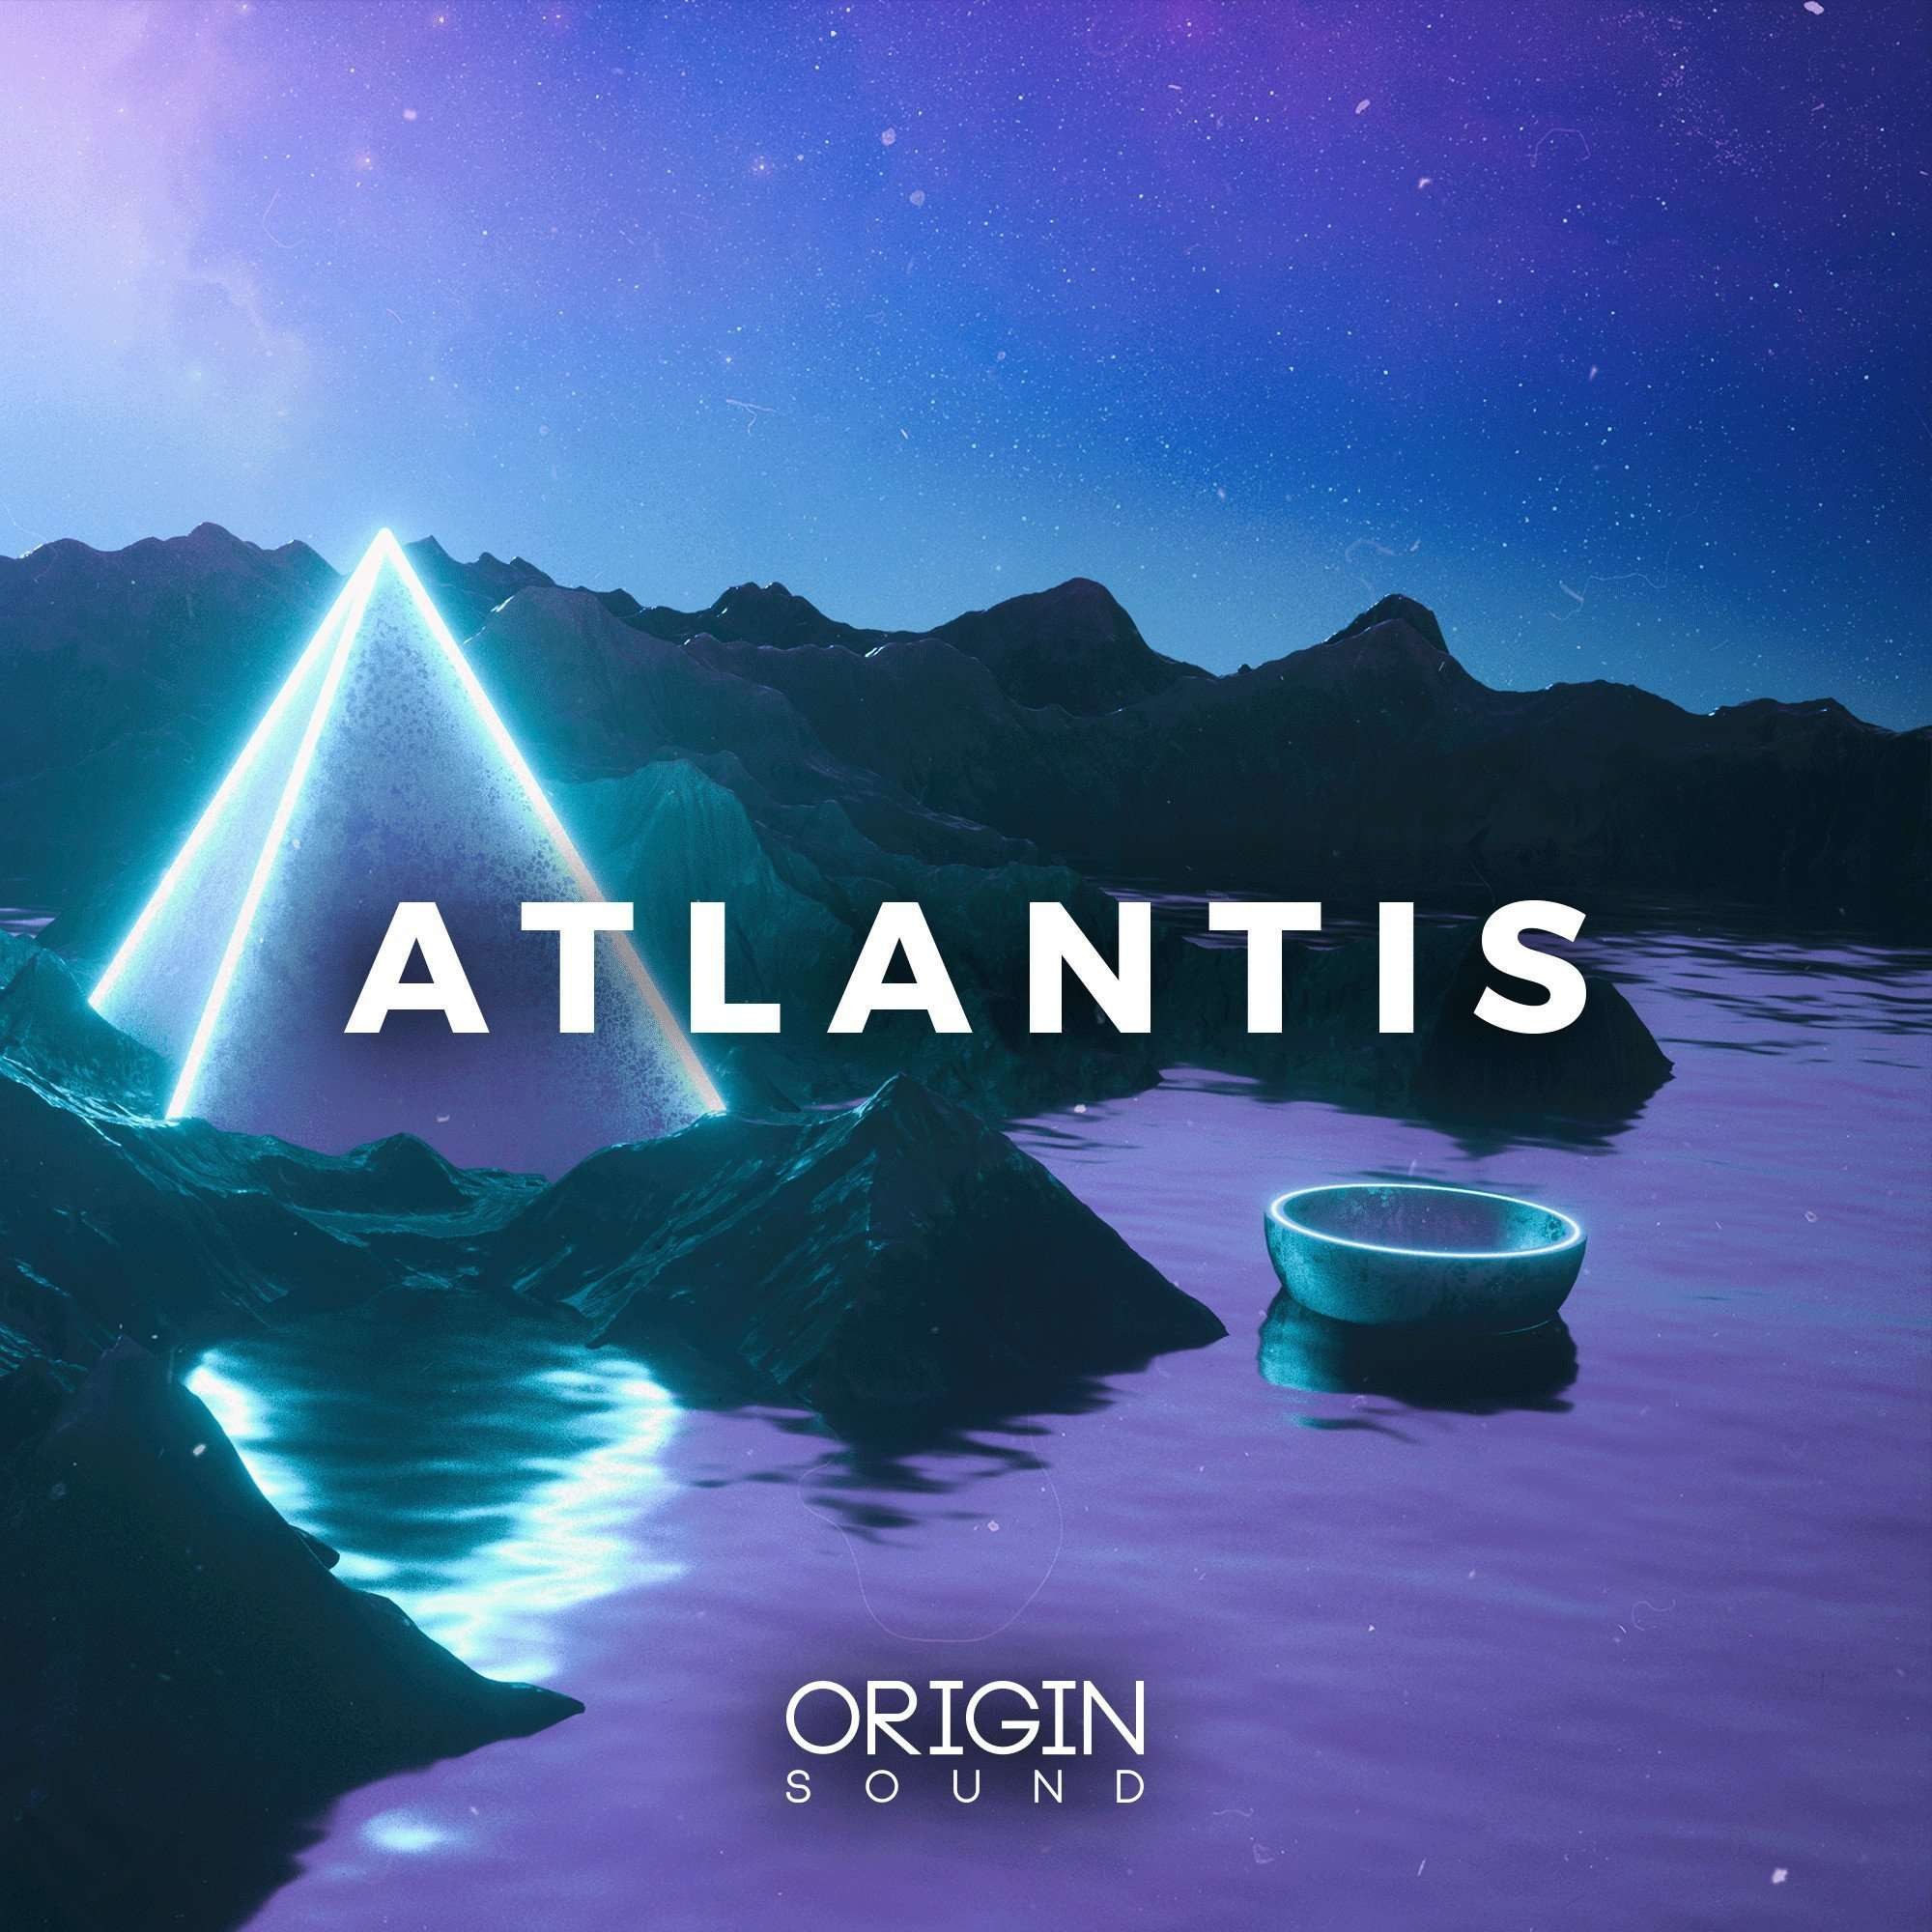 Atlantis - Vol 1 Sample Pack, Origin Sound, Origin Sound - Origin Sound samples royalty free fundamental ambience pack edm electronic ableton live fl studio logic pro piano drums keys bass chords midi melodies IDM organic downtempo tisoki presets elysian utopia free samples